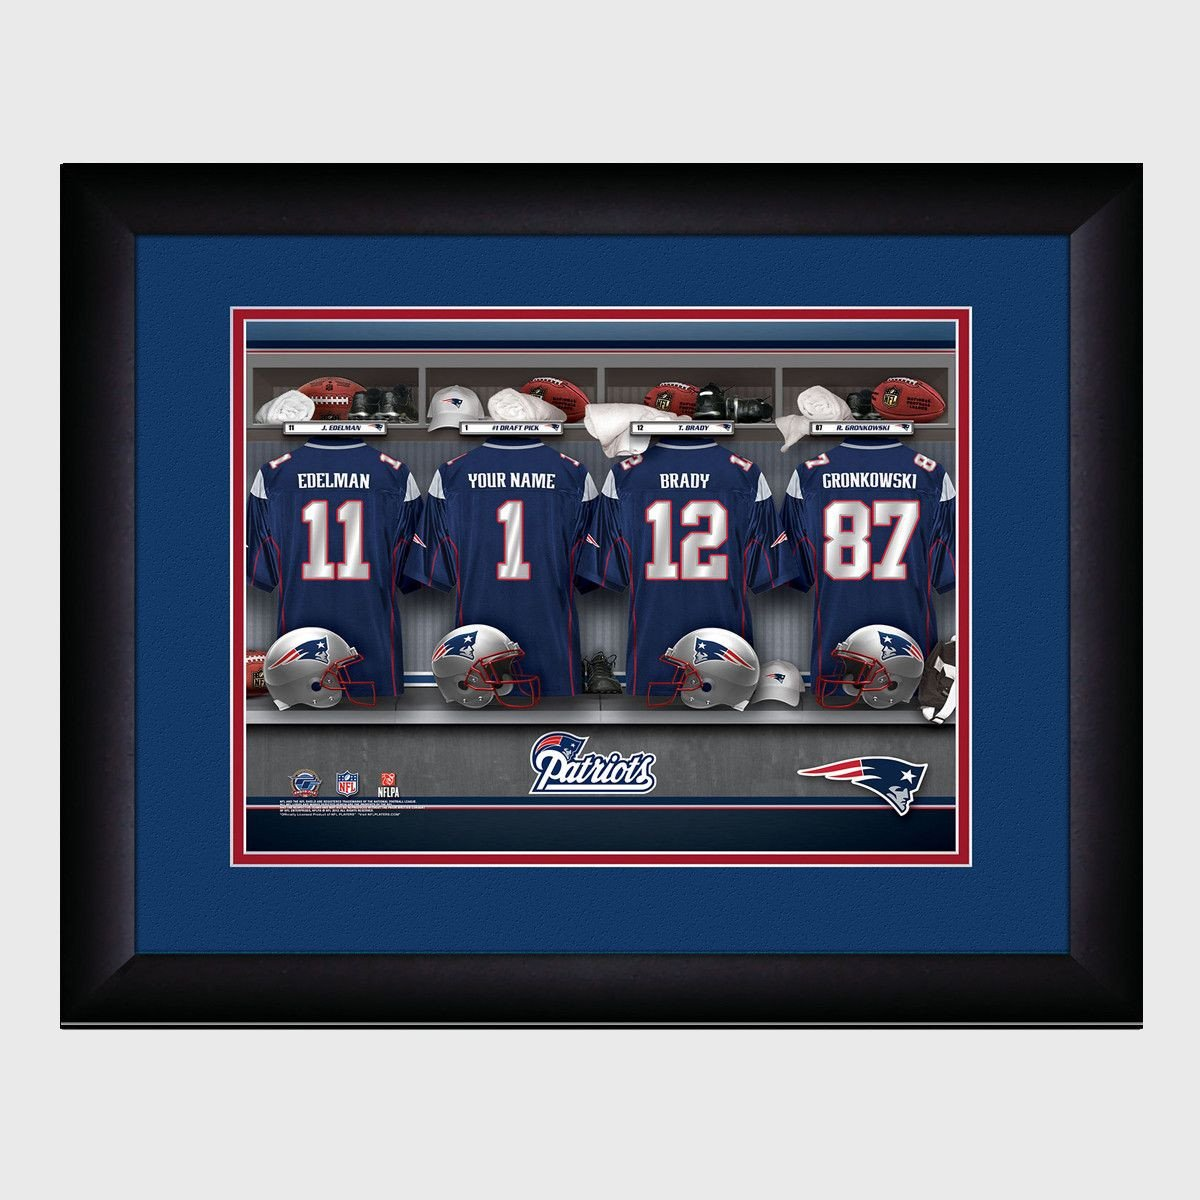 2784a0775f4 Personalized NFL Locker Sign w/Matted Frame - Patriots -